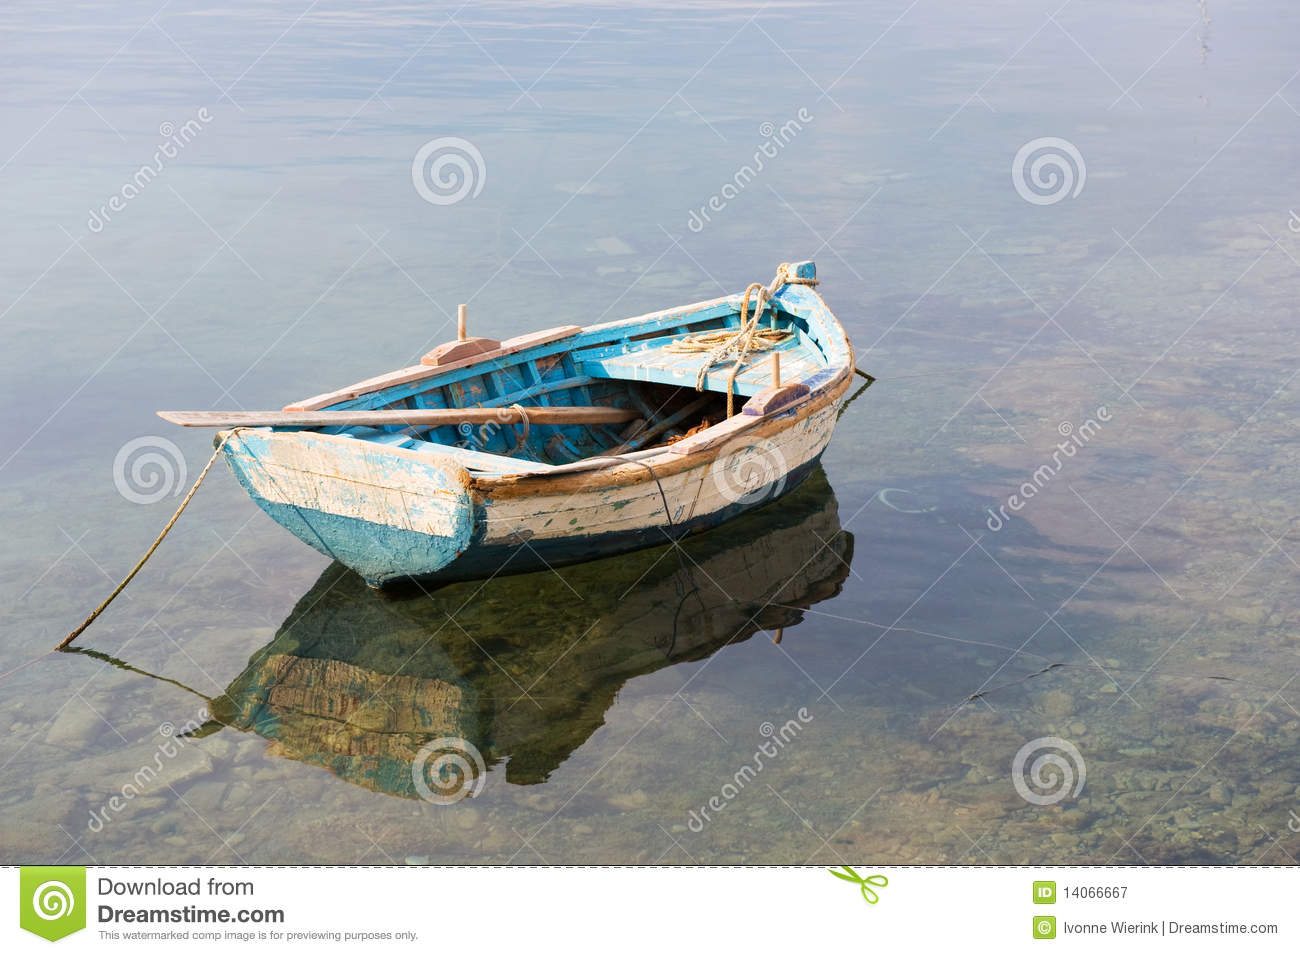 Wooden row boat stock image. Image of water, rope, greece - 14066667